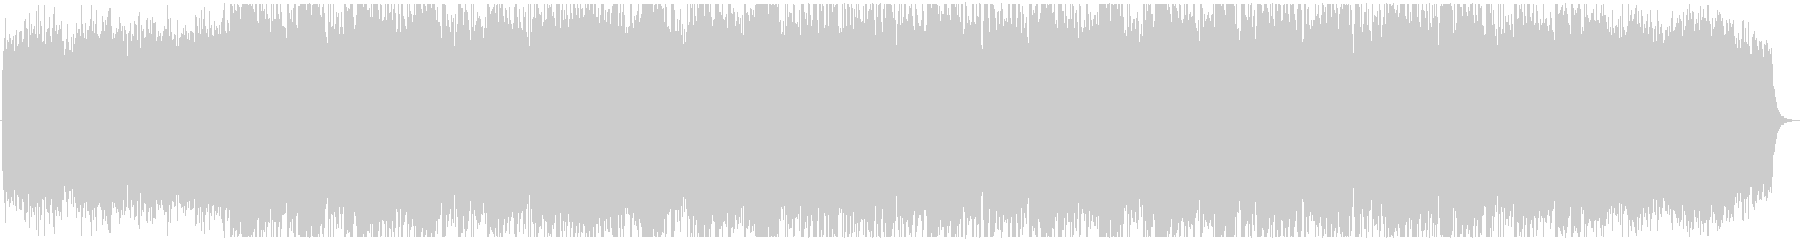 BGM of the melody which spreads's unreproduced waveform